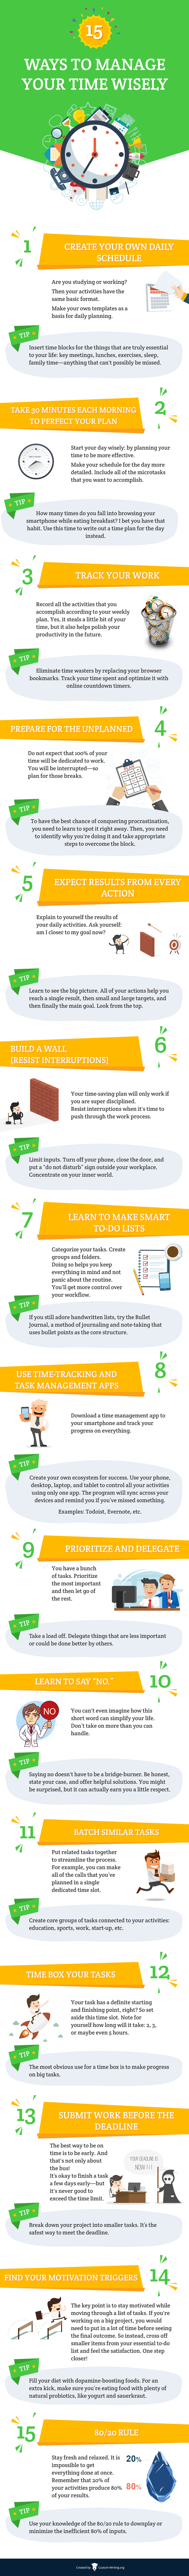 manage your time infographic